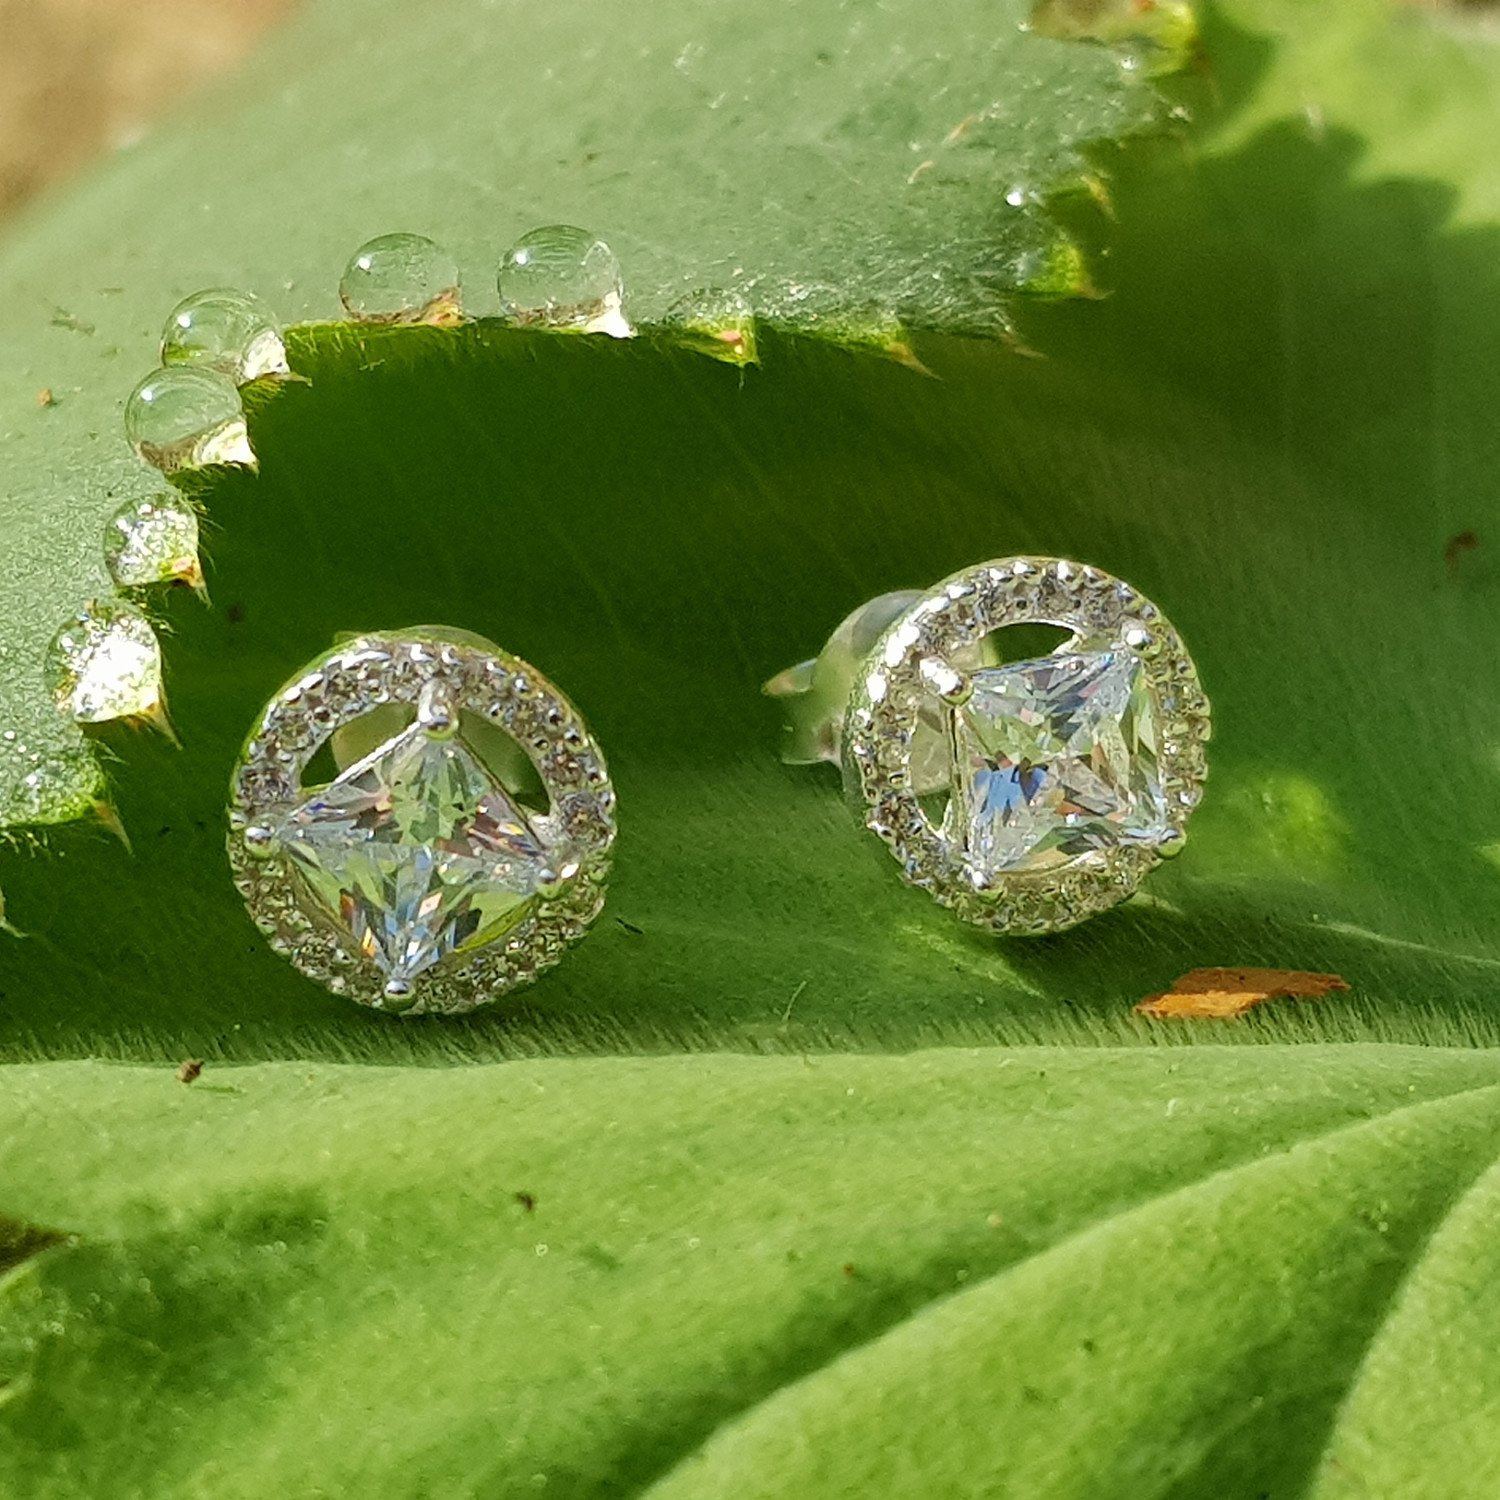 Geometric silver cubic zirconia studs - 8mm x 8mm - ONLY £23 - Free UK delivery